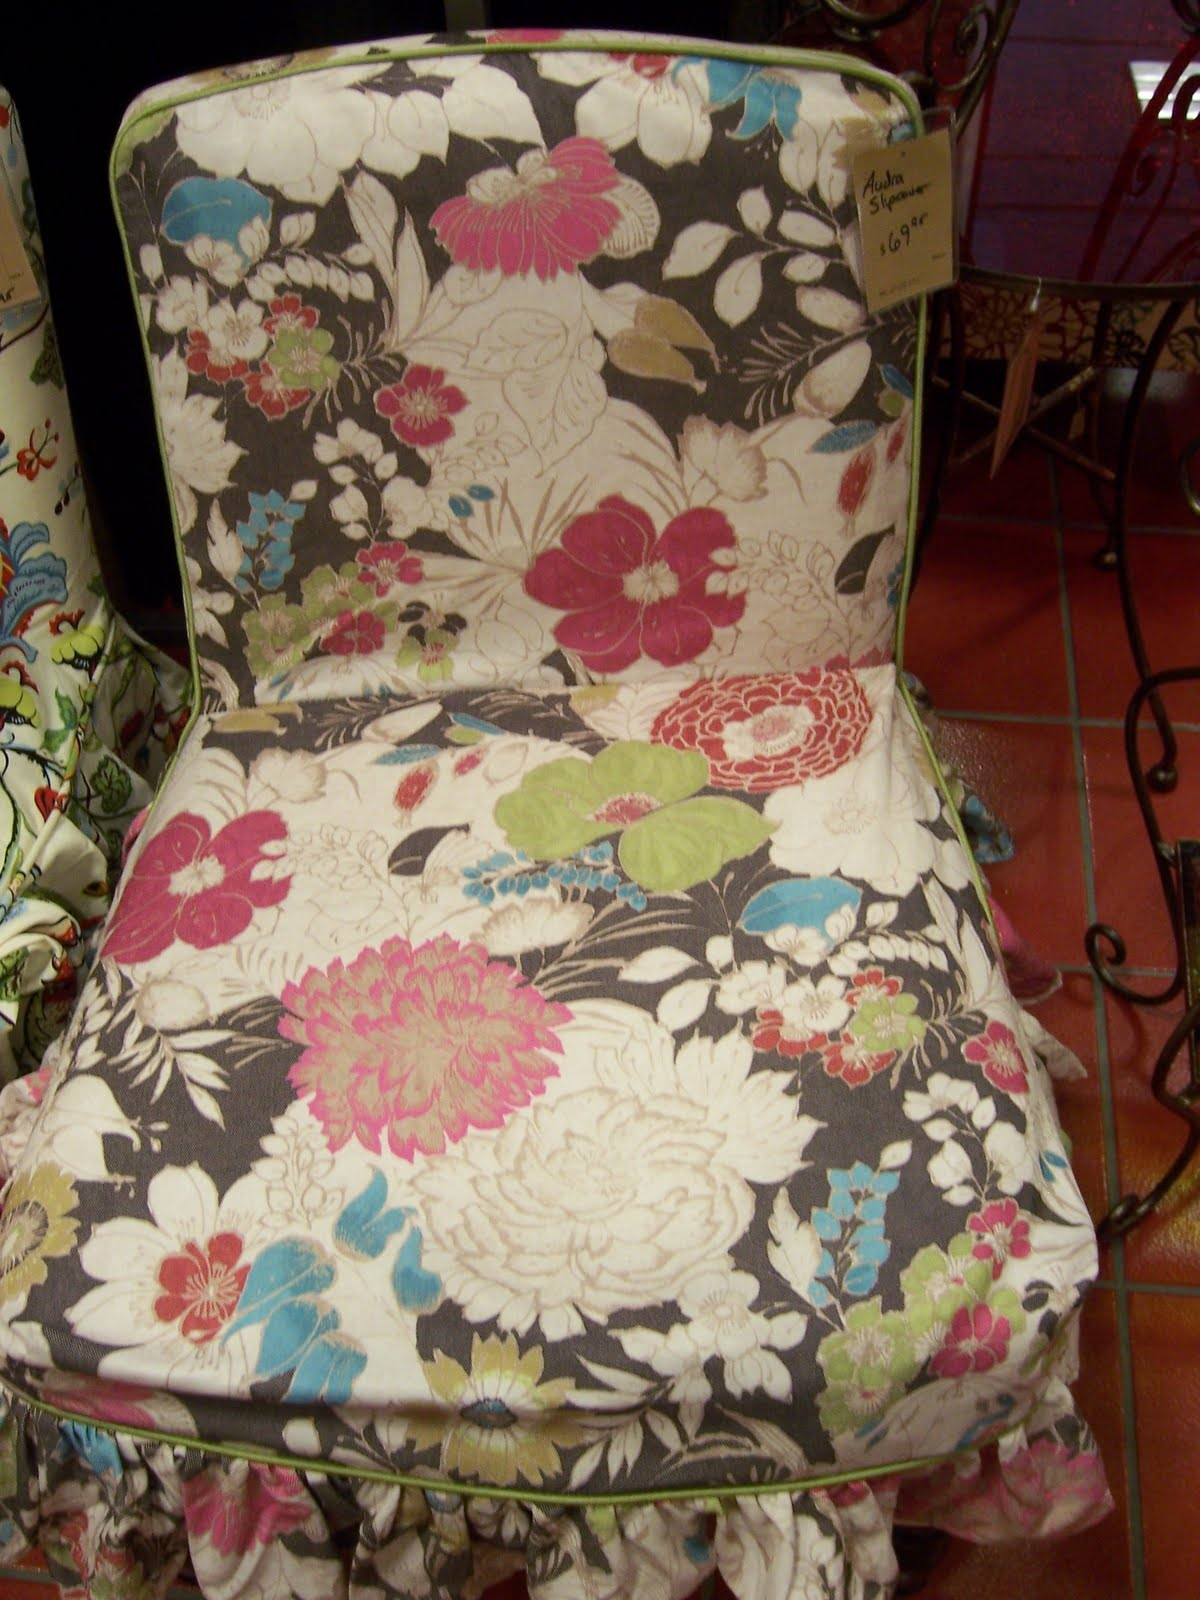 Exceptionnel What A Great Way To Cover Up An Old Chair For $70 Without The Expensive  Cost Of Reupholstering Or Doing It Yourself. I Love The Ruffled Edges, Too.